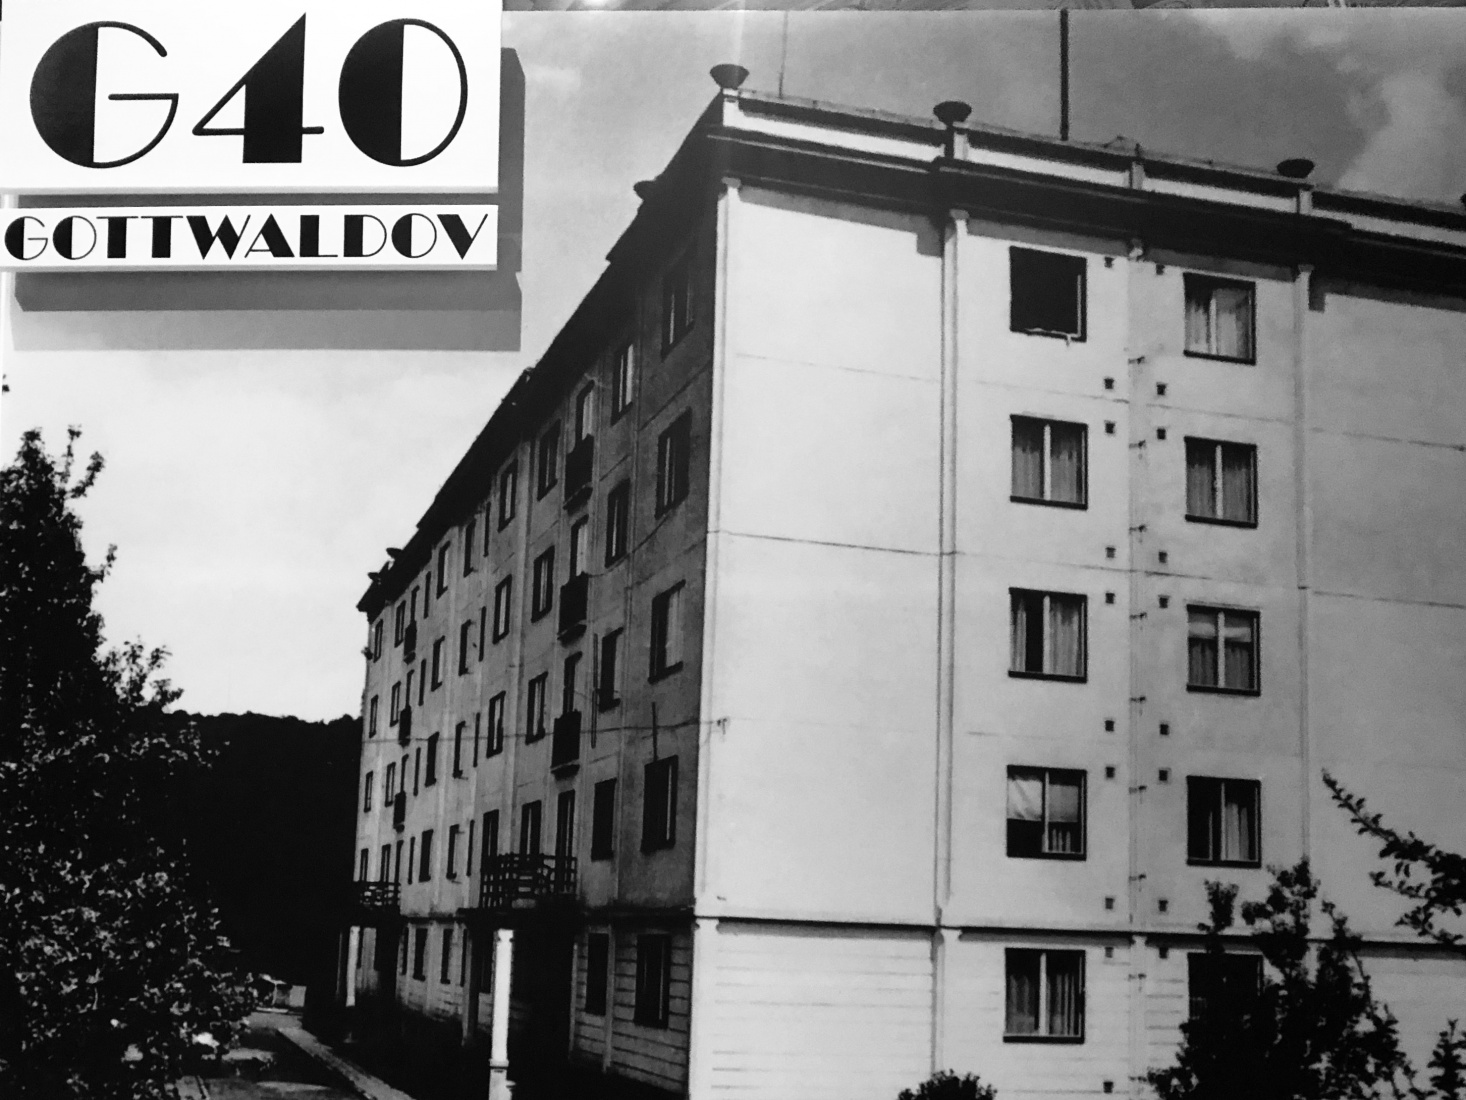 A block of concrete panels, the eastern Czech city of Gottwaldov (now Zlín, Czech Republic).